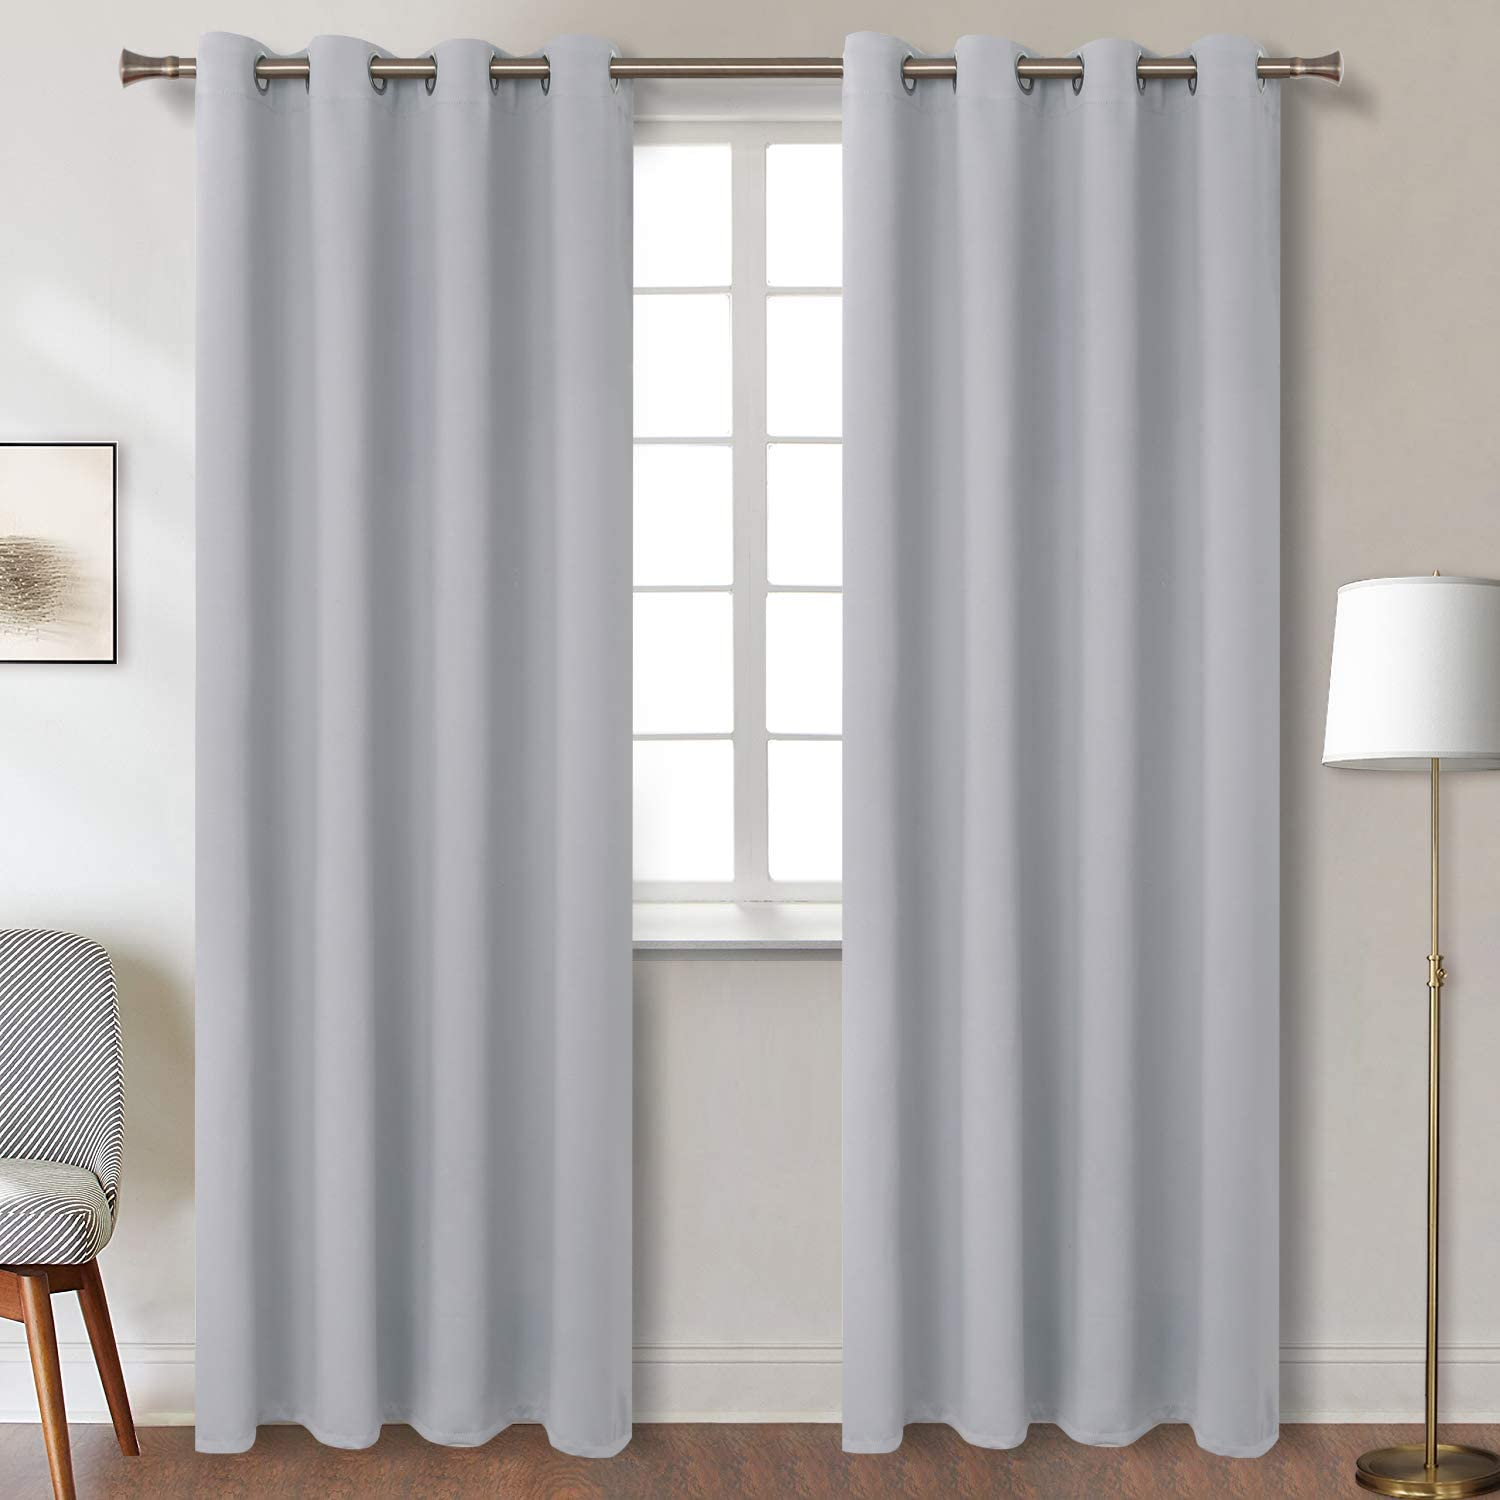 BGment Blackout Curtains for Bedroom - Grommet Thermal Insulated Room Darkening Curtains for Living Room, Set of 2 Panels (52 x 95 Inch, Light Grey)